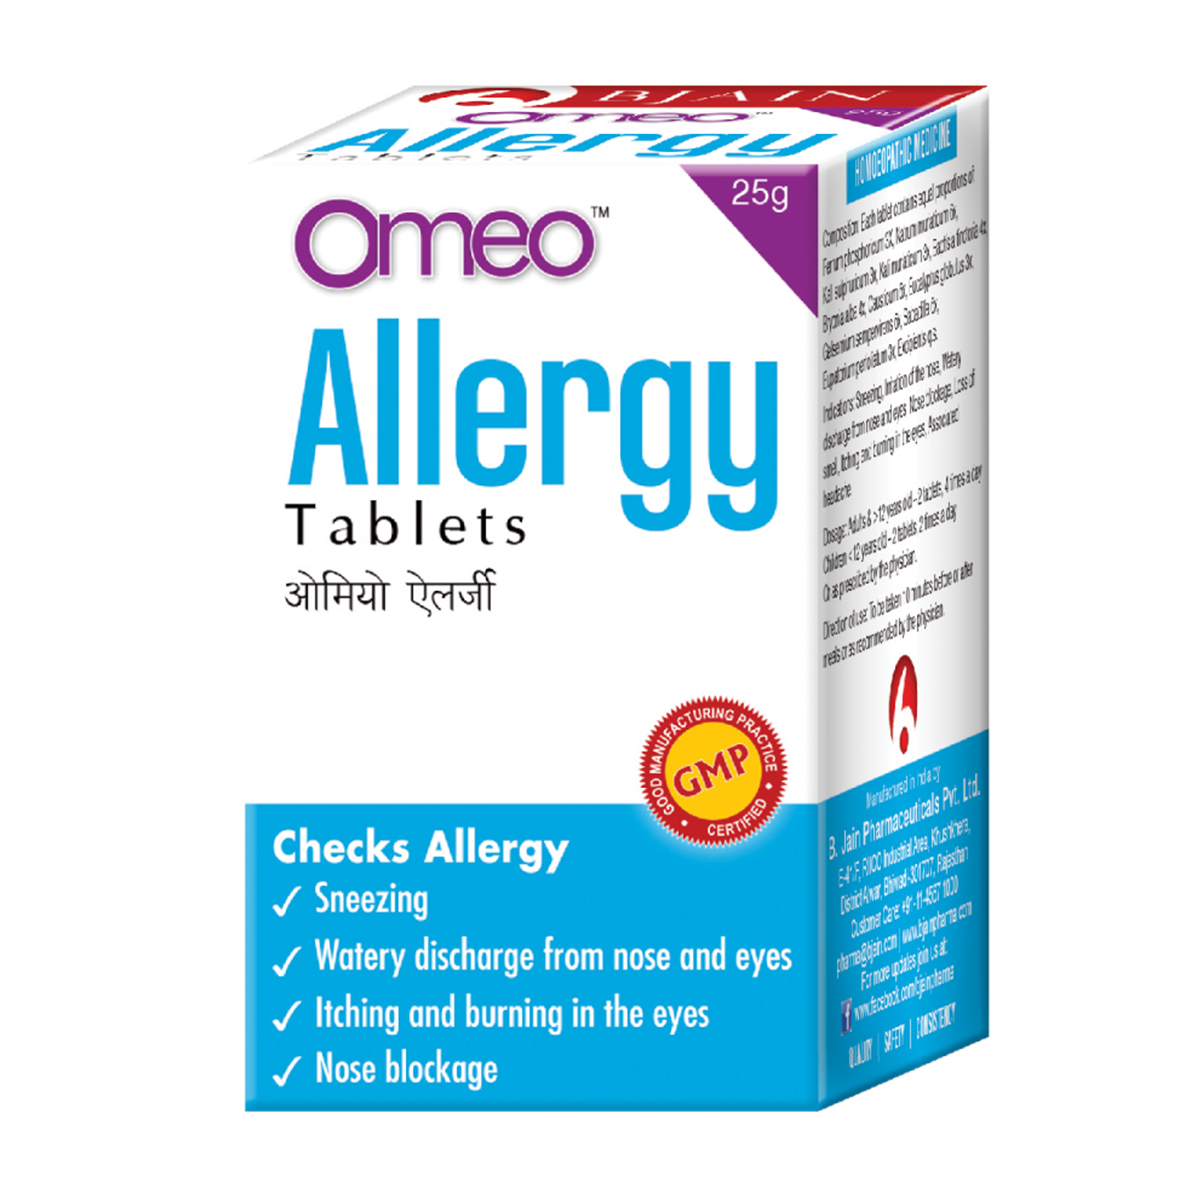 Omeo Allergy Tablets